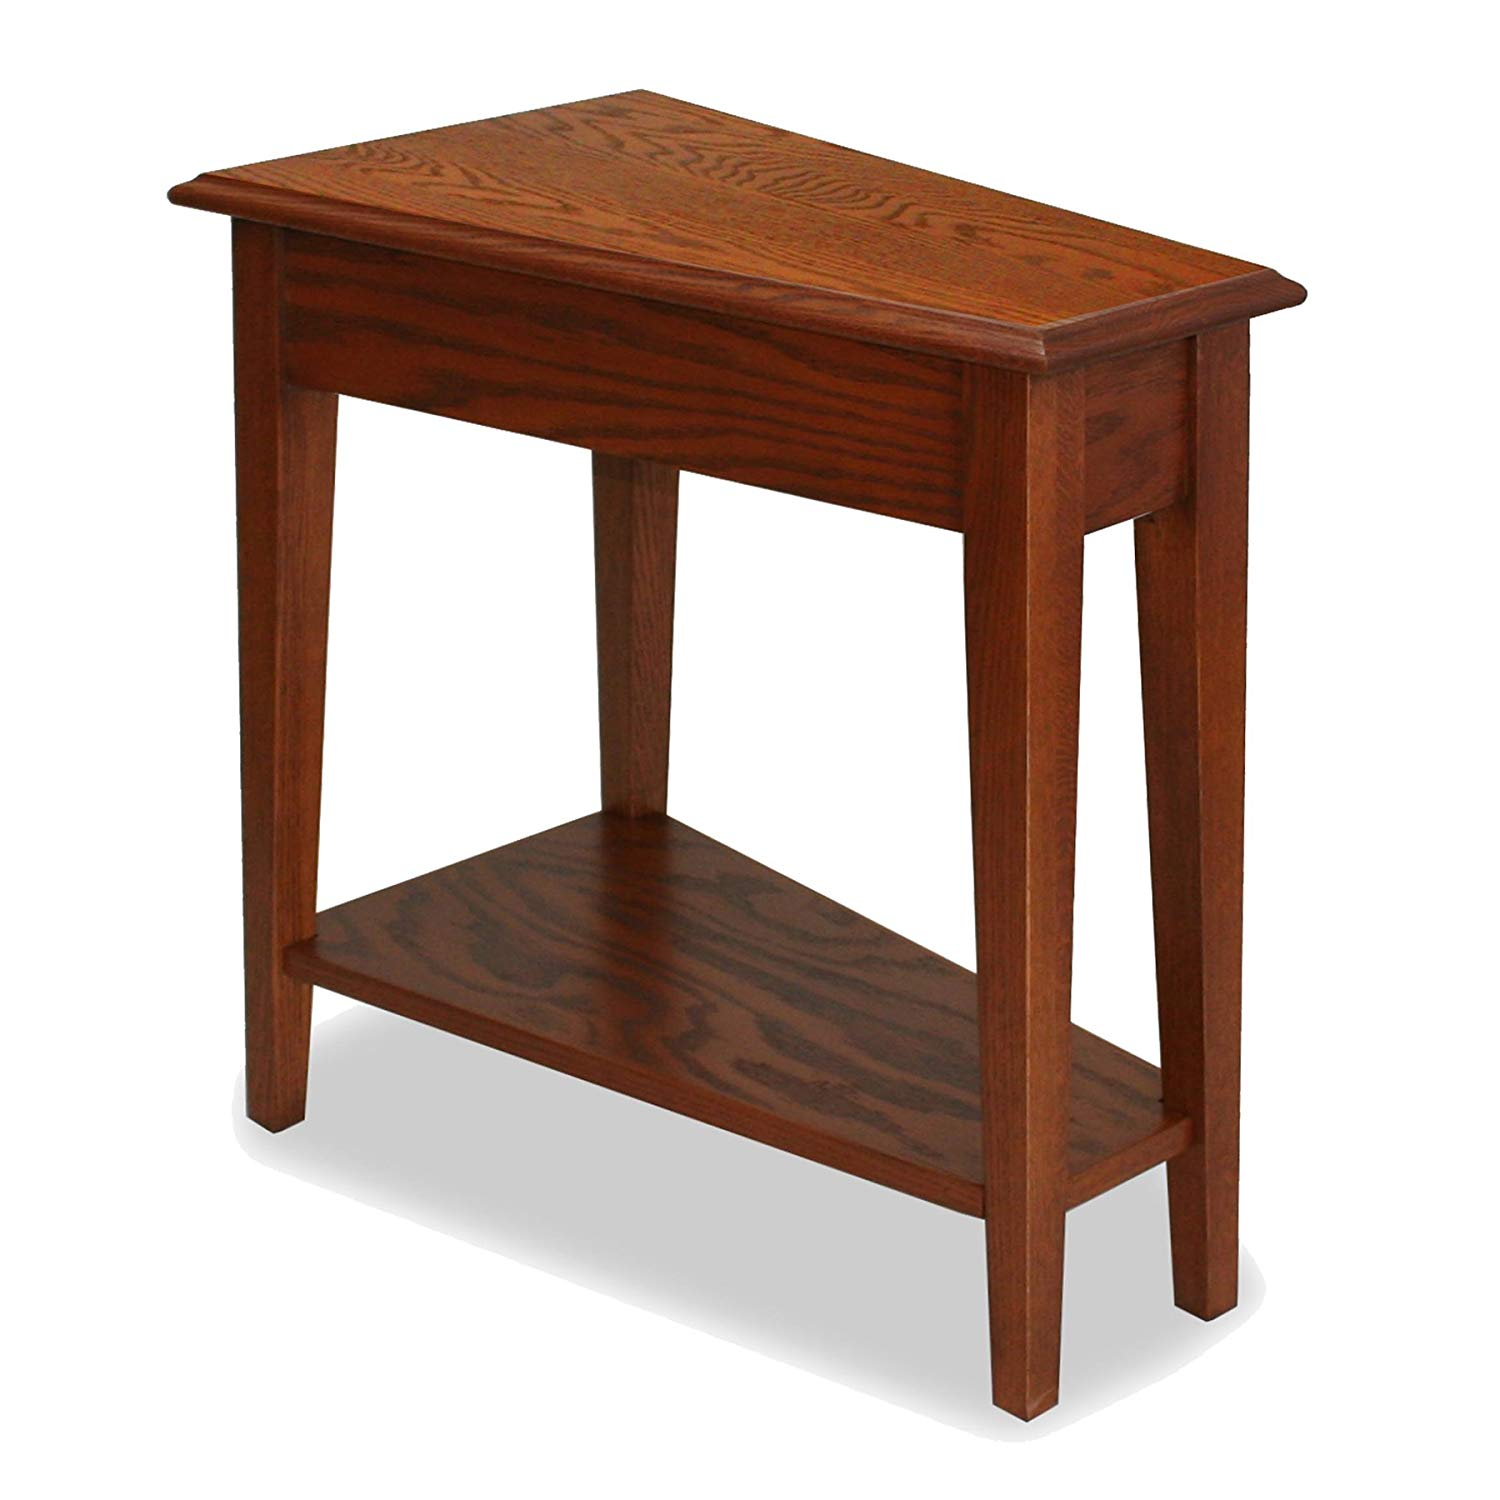 leick recliner wedge end table medium oak kitchen dining xukflsl espresso finish ashley kellum coffee couch calgary italian marble replacement glass for patio bar metal sets big